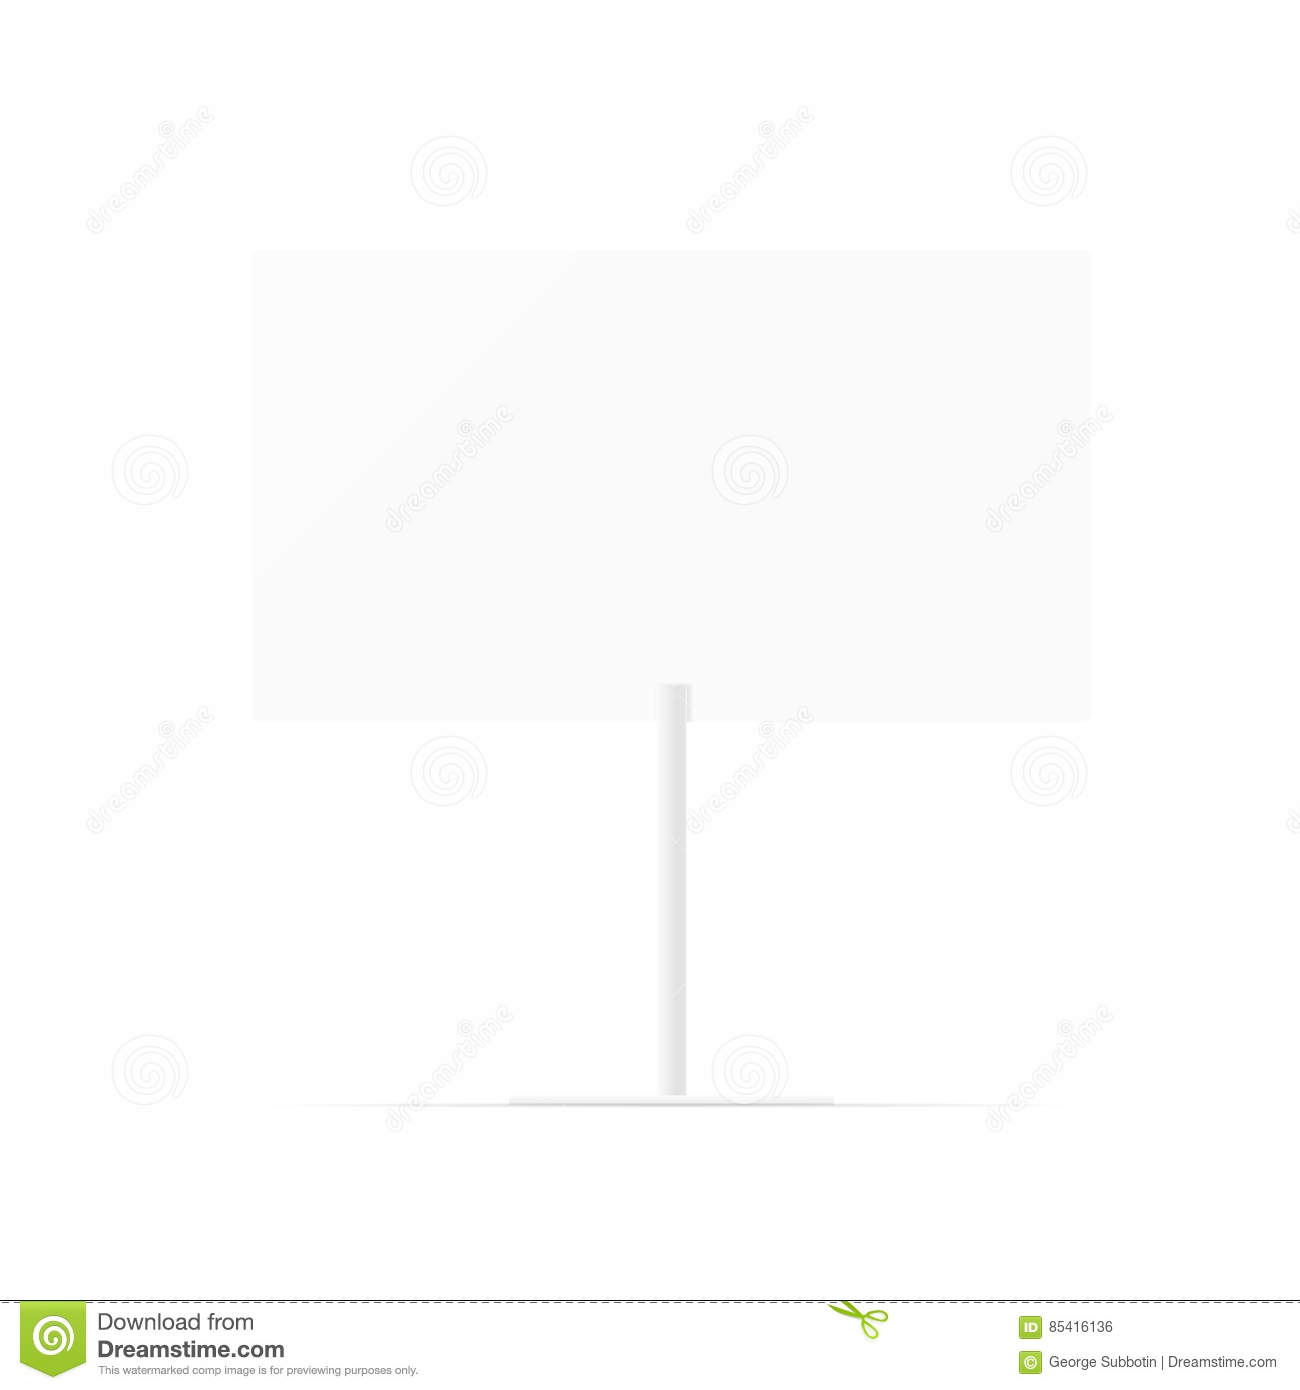 Whiteboard Ständer Simple Blank Whiteboard Empty White Billboard With Space For